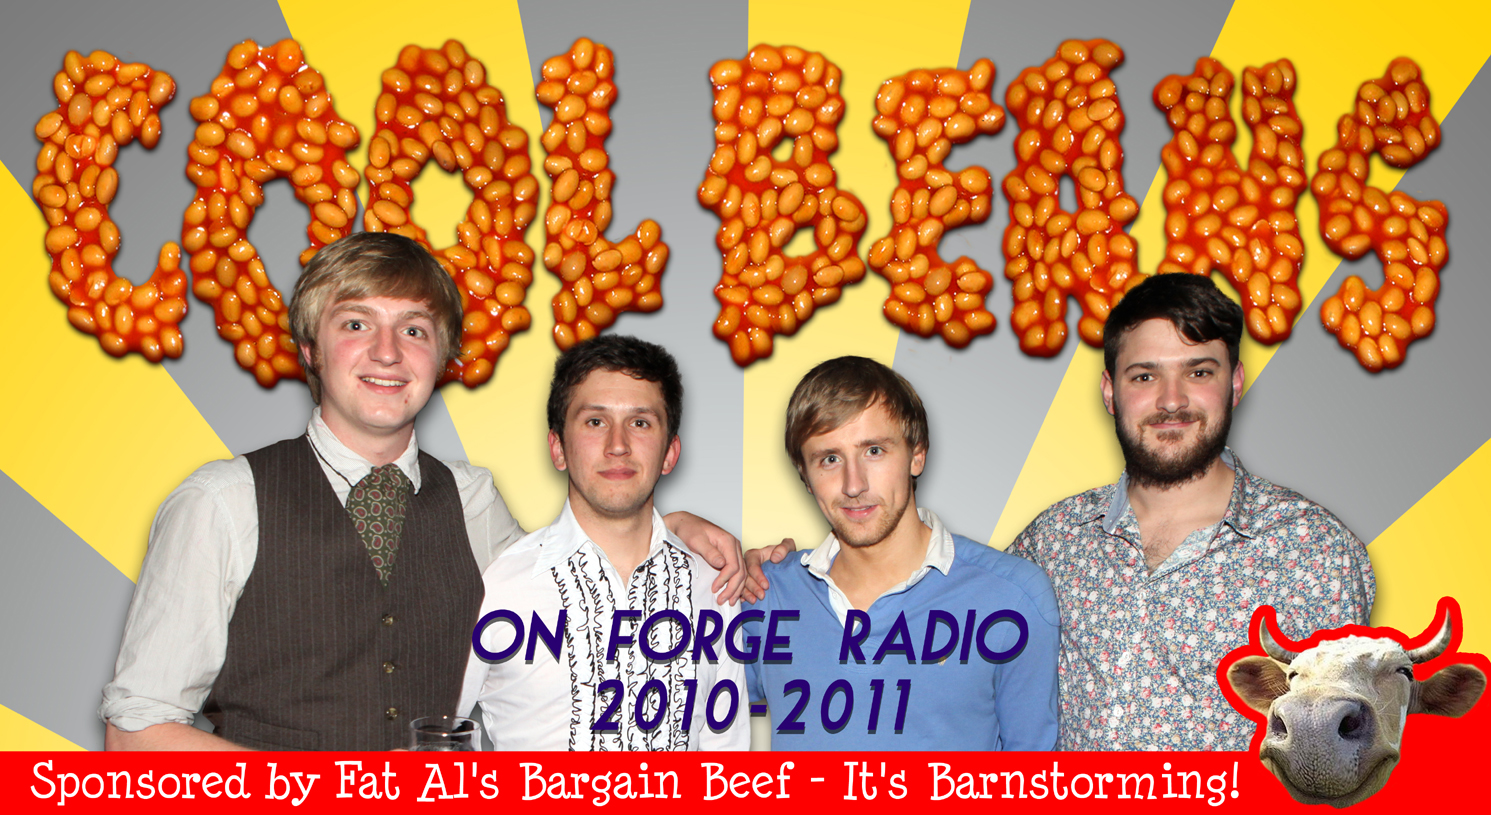 Cool Beans on Forge Radio